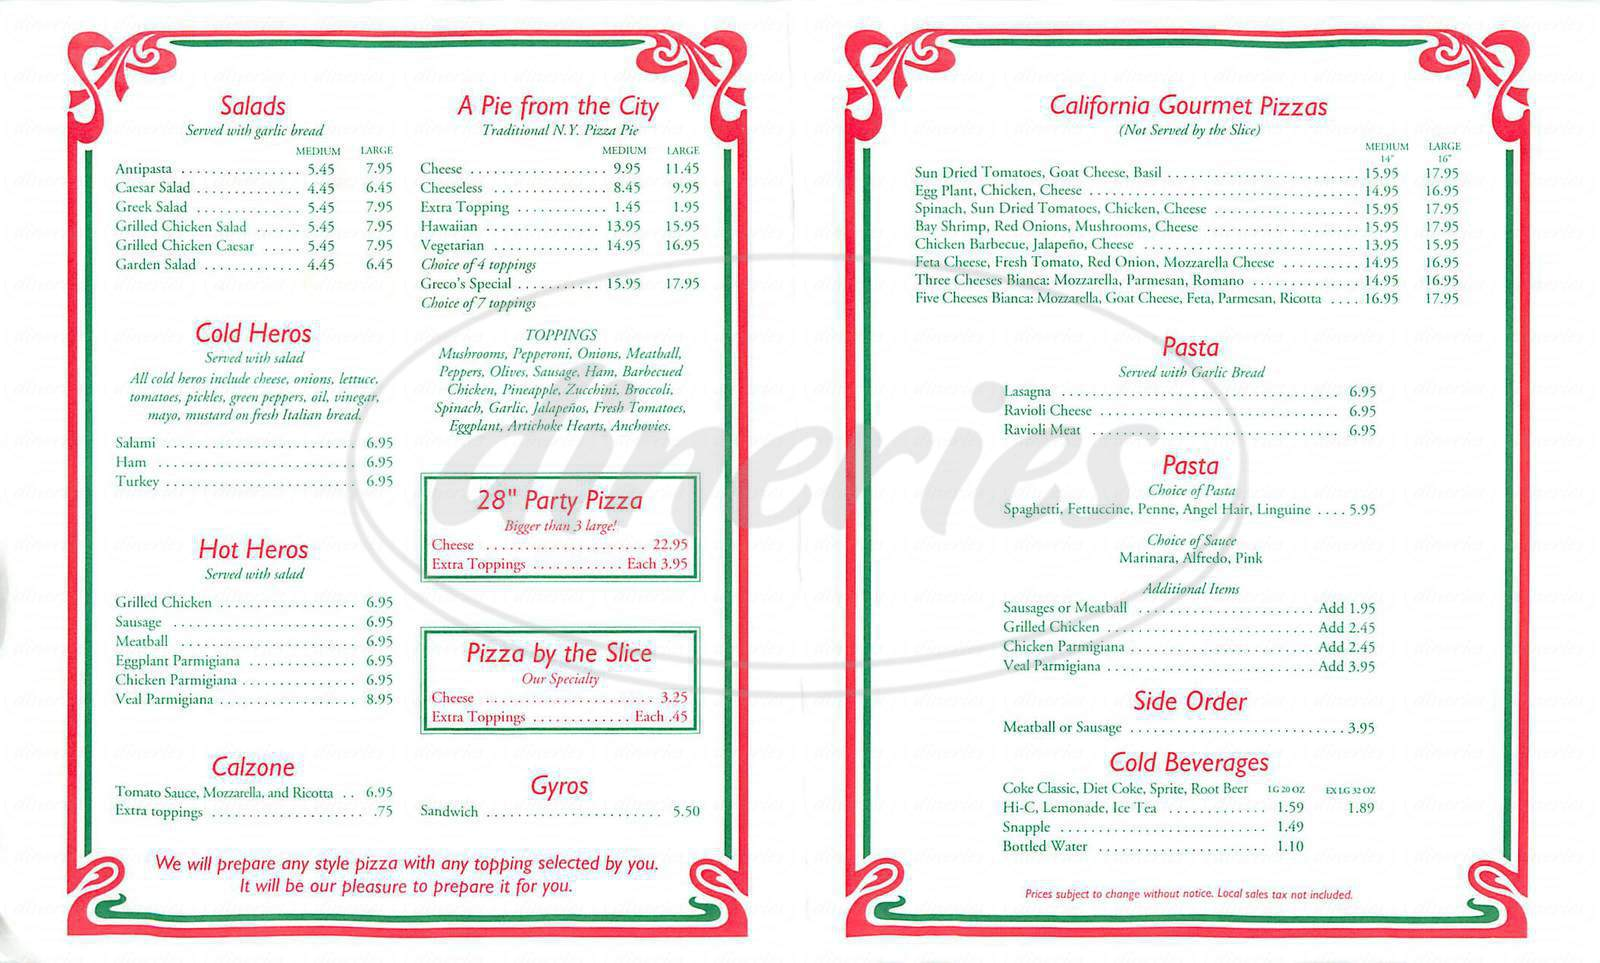 menu for Greco's New York Pizzeria